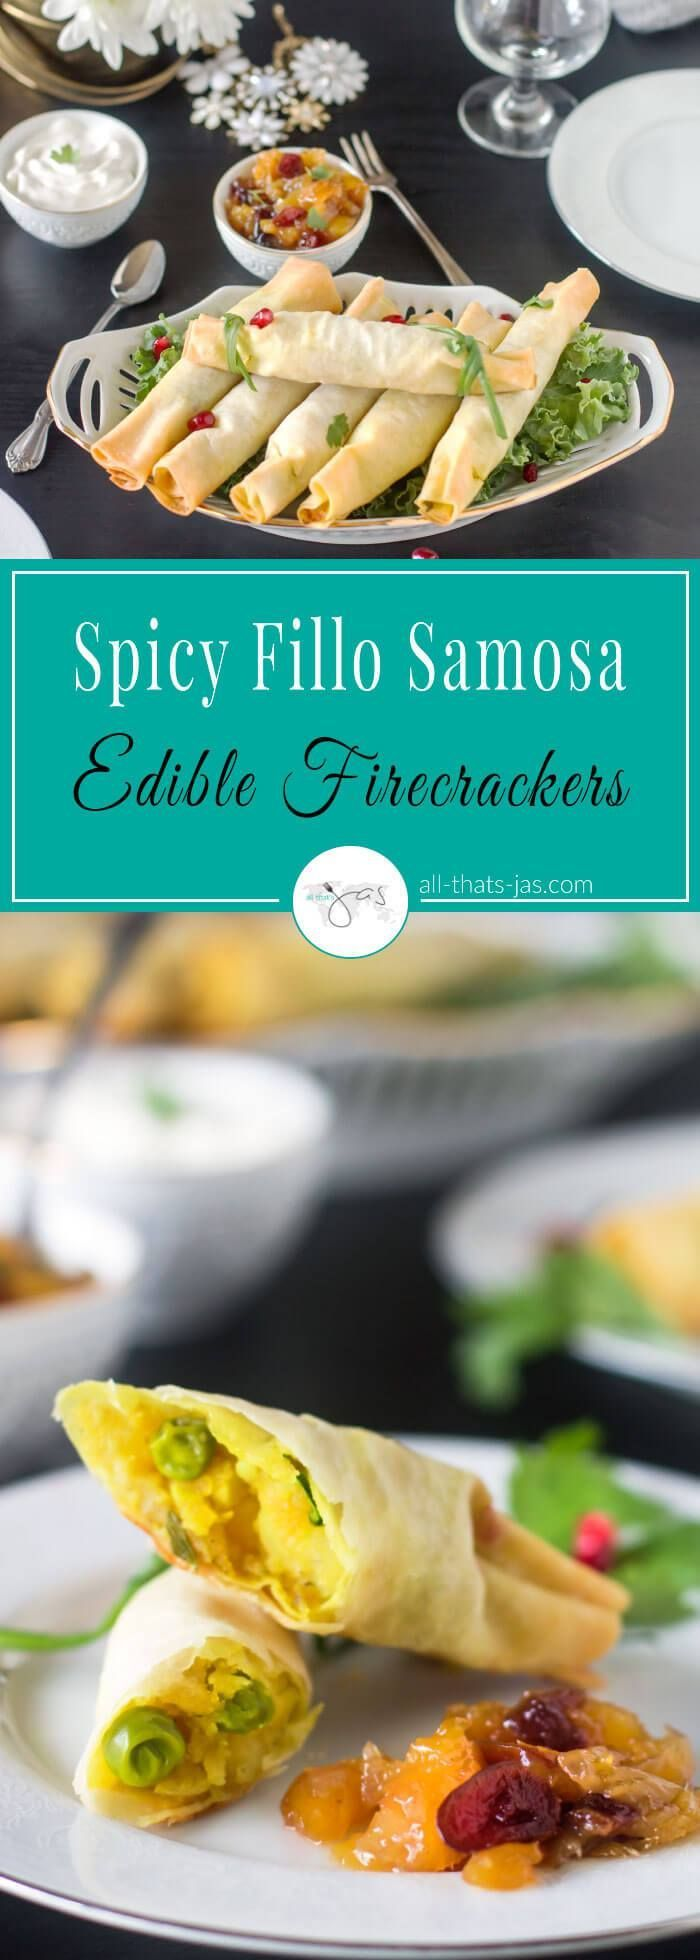 Perfect appetizer for New Year, Fourth of July or any celebration, these spicy fillo samosa edible firecrackers are made with potatoes, peas, Indian spices, and pastry. #Indianfood #fillo #phyllo #filo #pastry #samosa #spicy #vegan #vegetarian #appetizer #NewYear #FourthofJuly #Independenceday